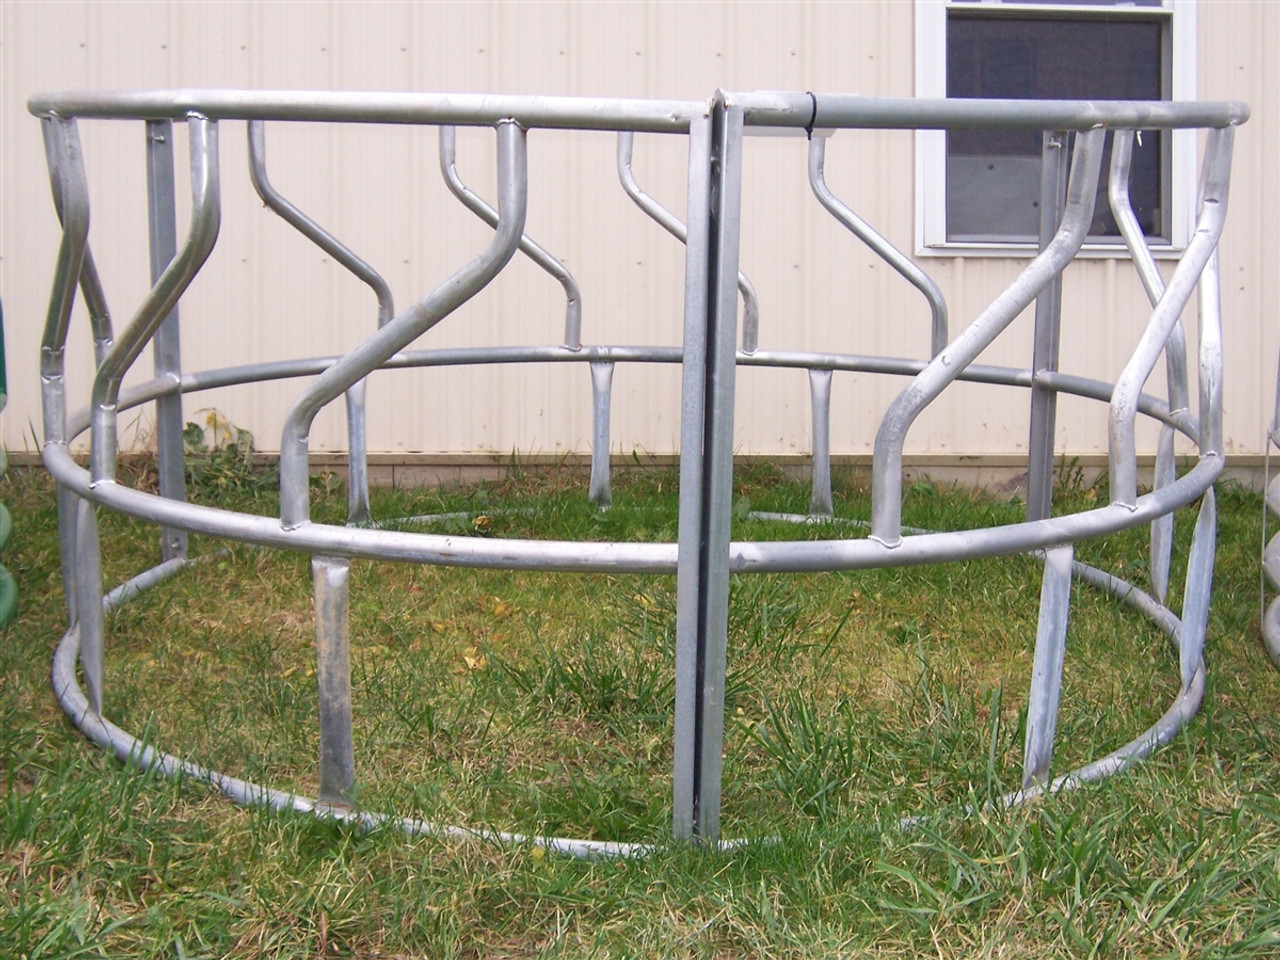 hay feeder categories bale ring bordin with tray portfolio square bros category cattle feeders